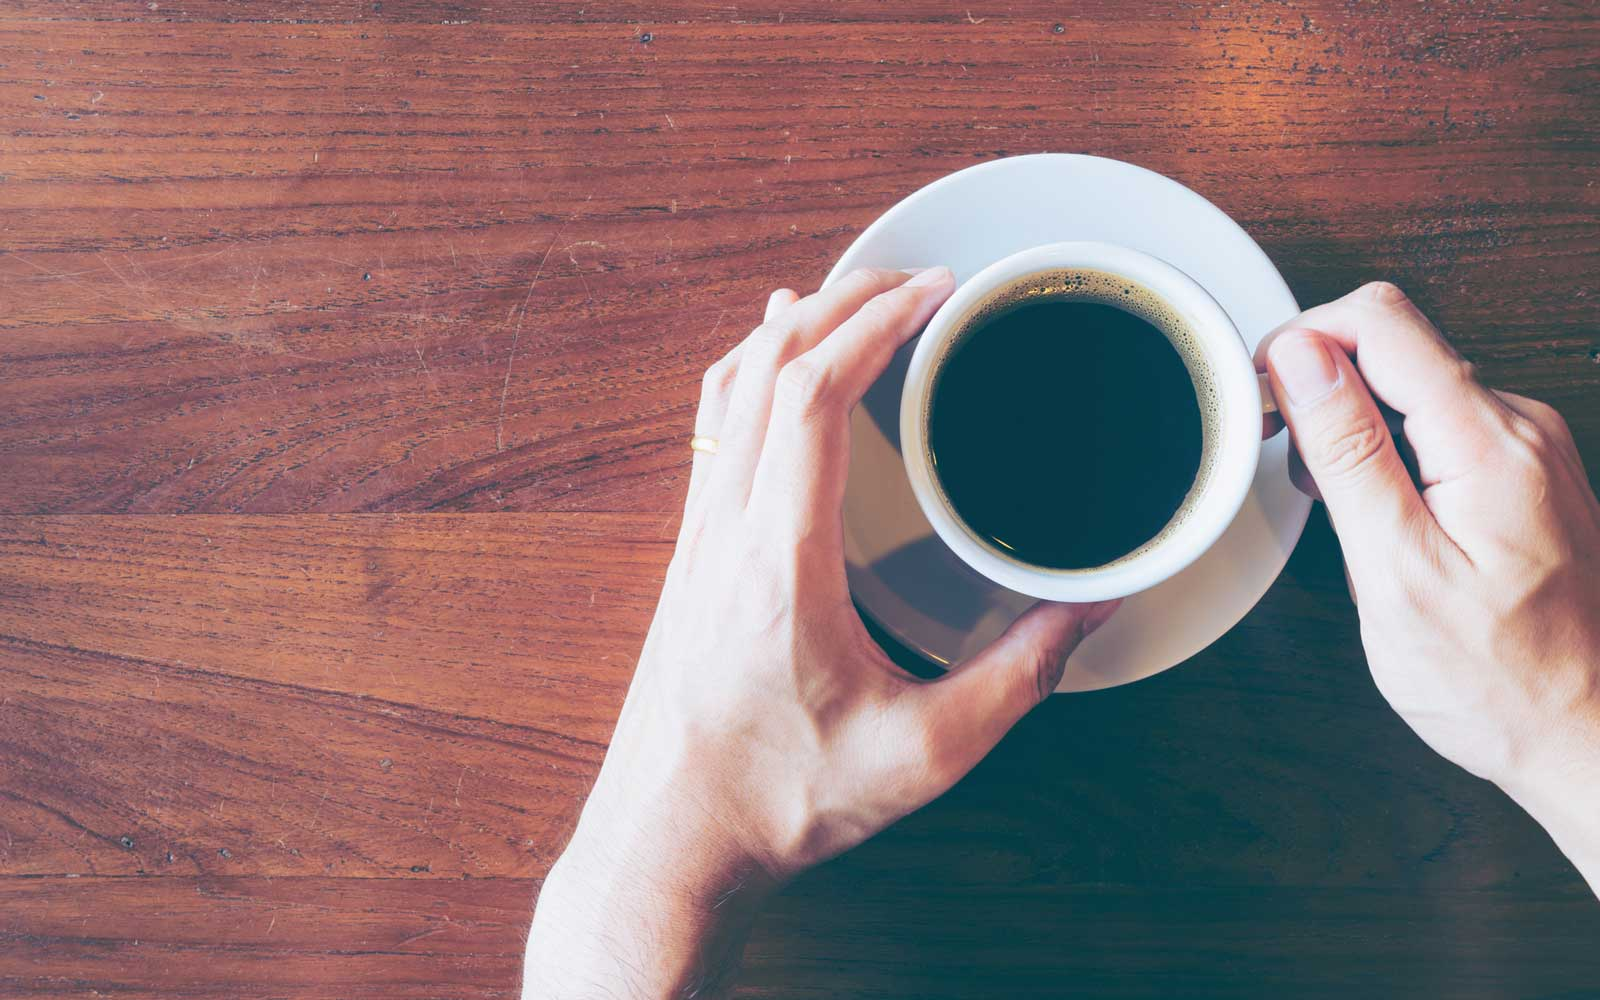 Cropped Hands Holding Coffee Cup On Table